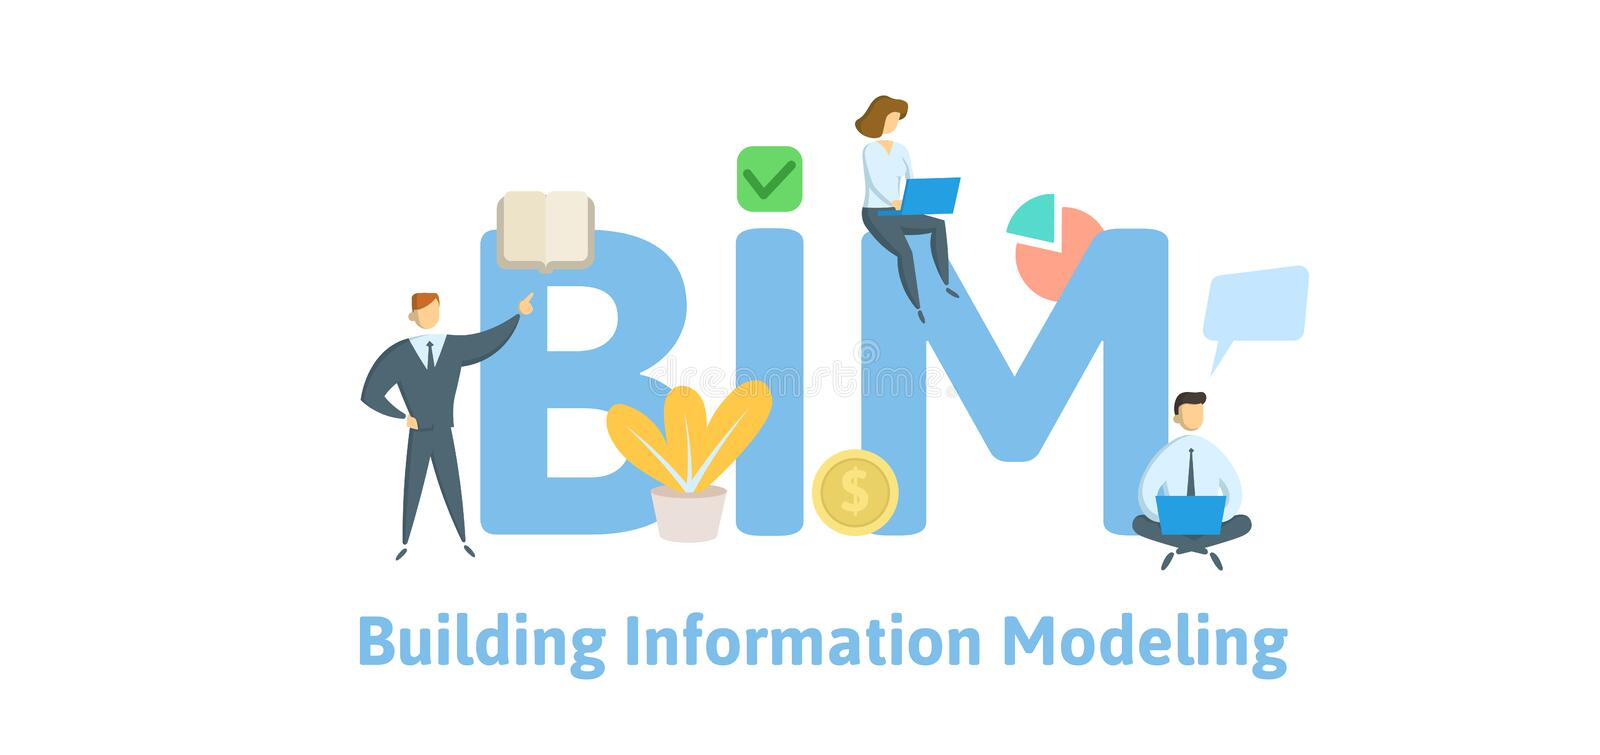 BIM, building information modeling. Concept with keywords, letters and icons. Flat vector illustration. Isolated on stock illustration